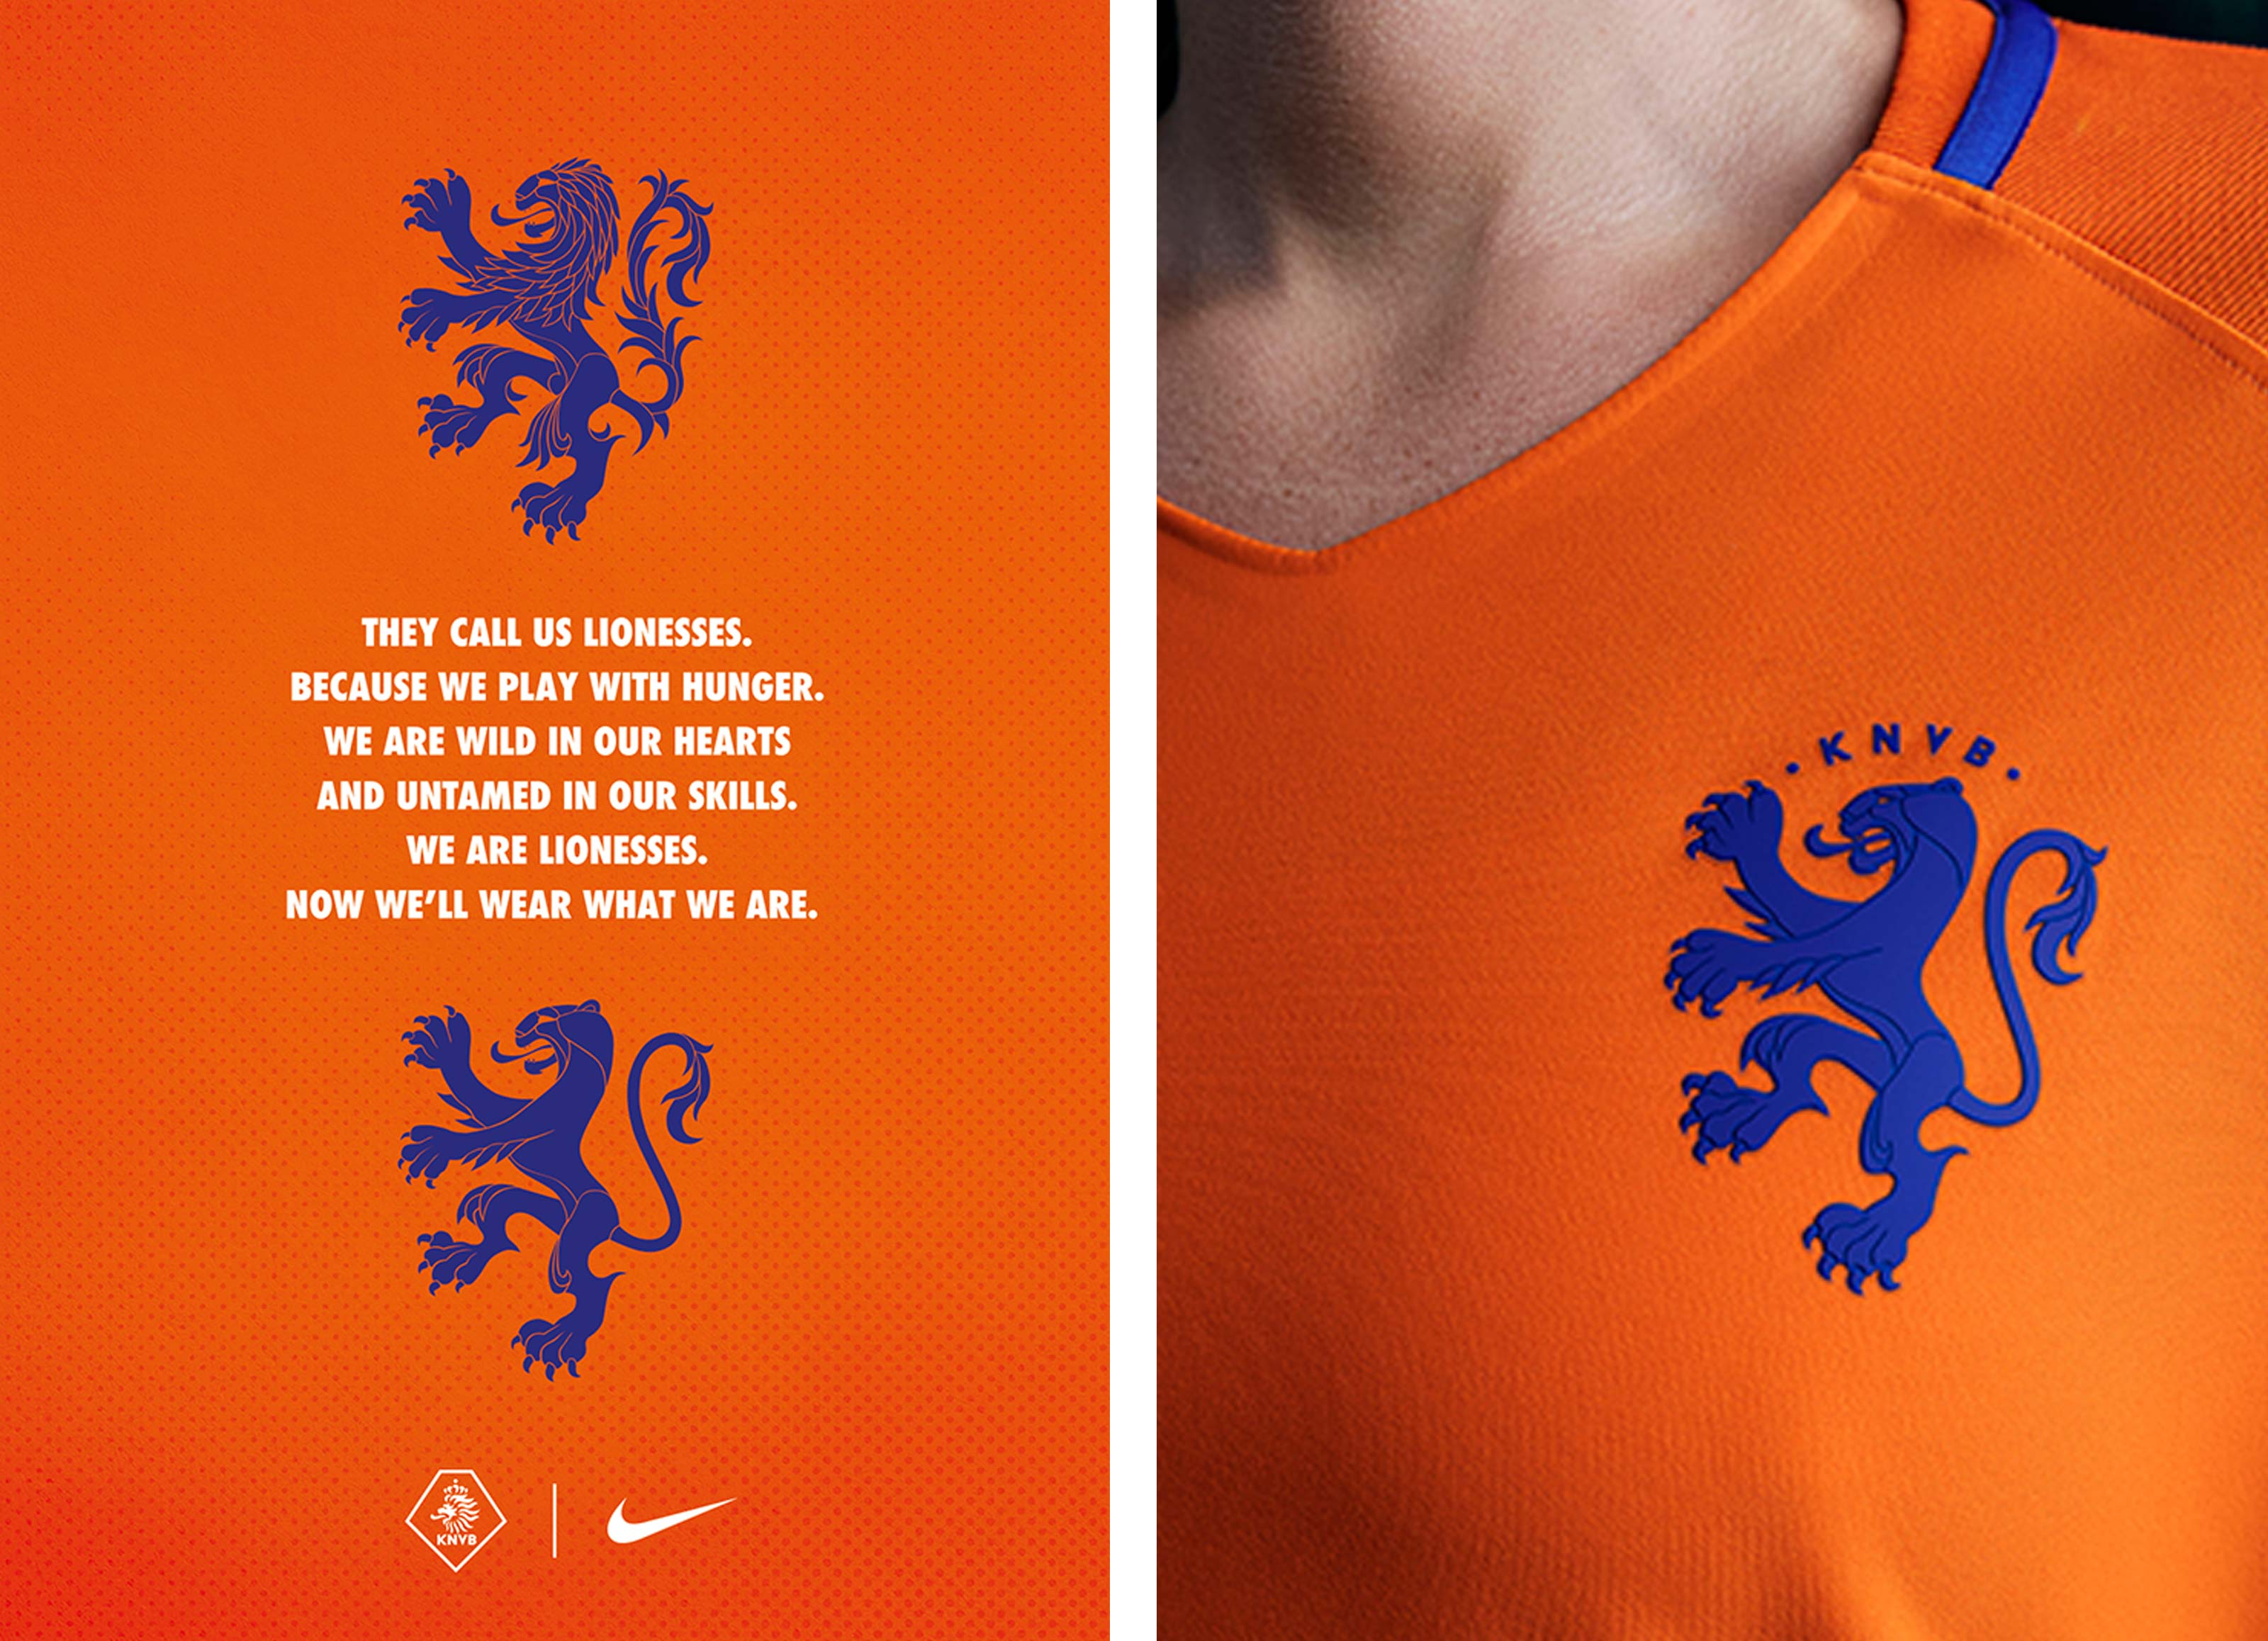 Netherlands lion to lioness brand campaign and shirt detail